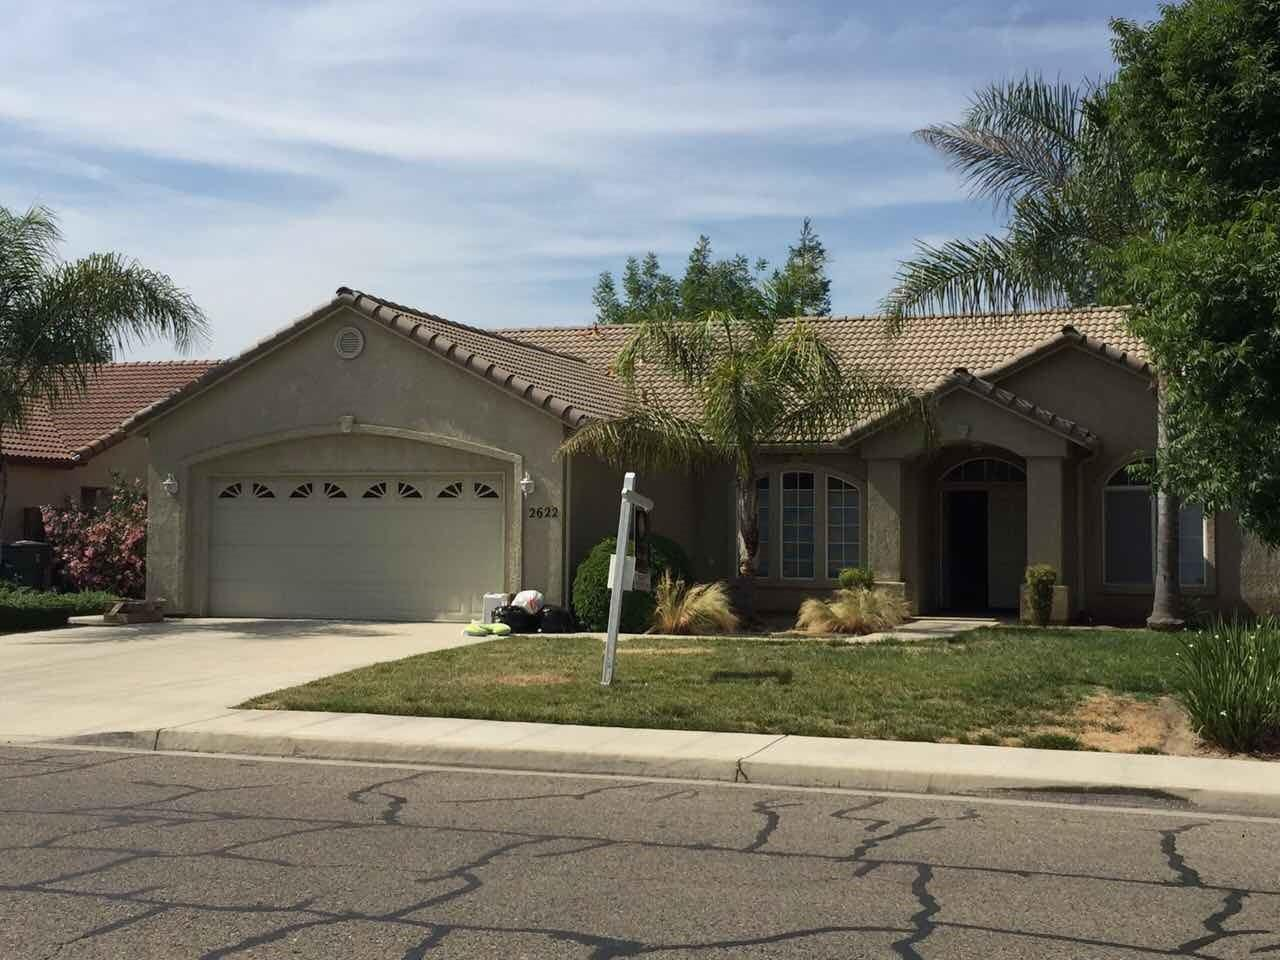 Single Family Home for Sale at 2622 W Robin Avenue Visalia, California 93291 United States